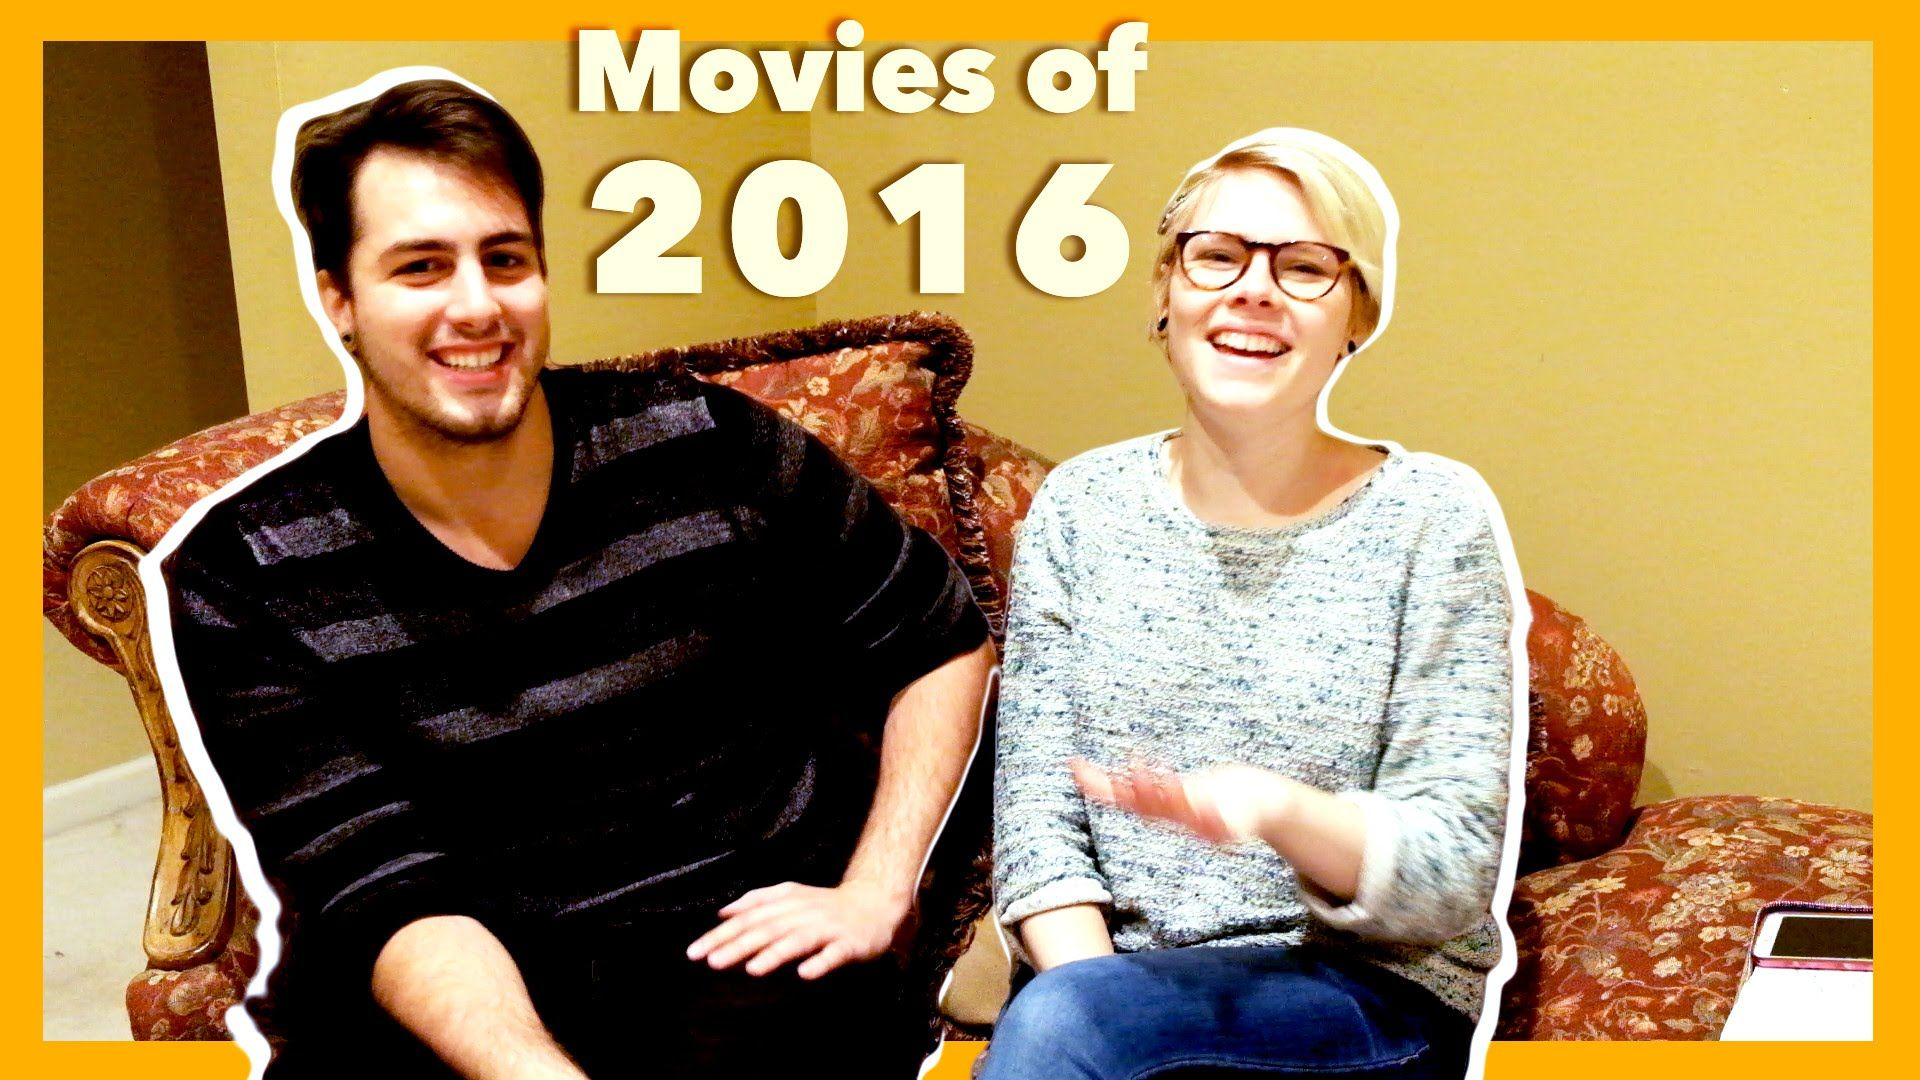 The Best and Worst Movies Coming Out in 2016